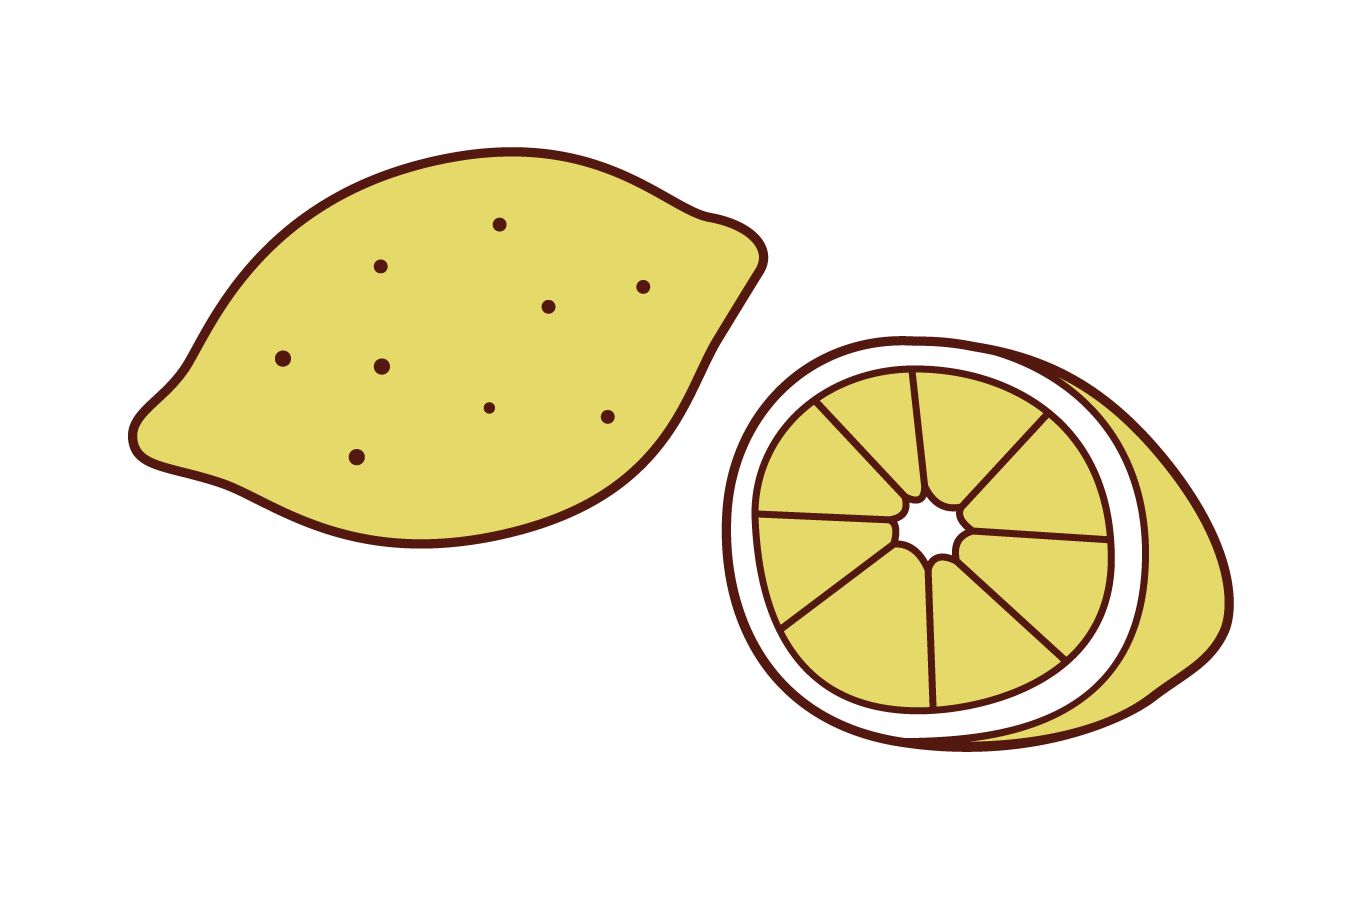 Lemon Illustrations